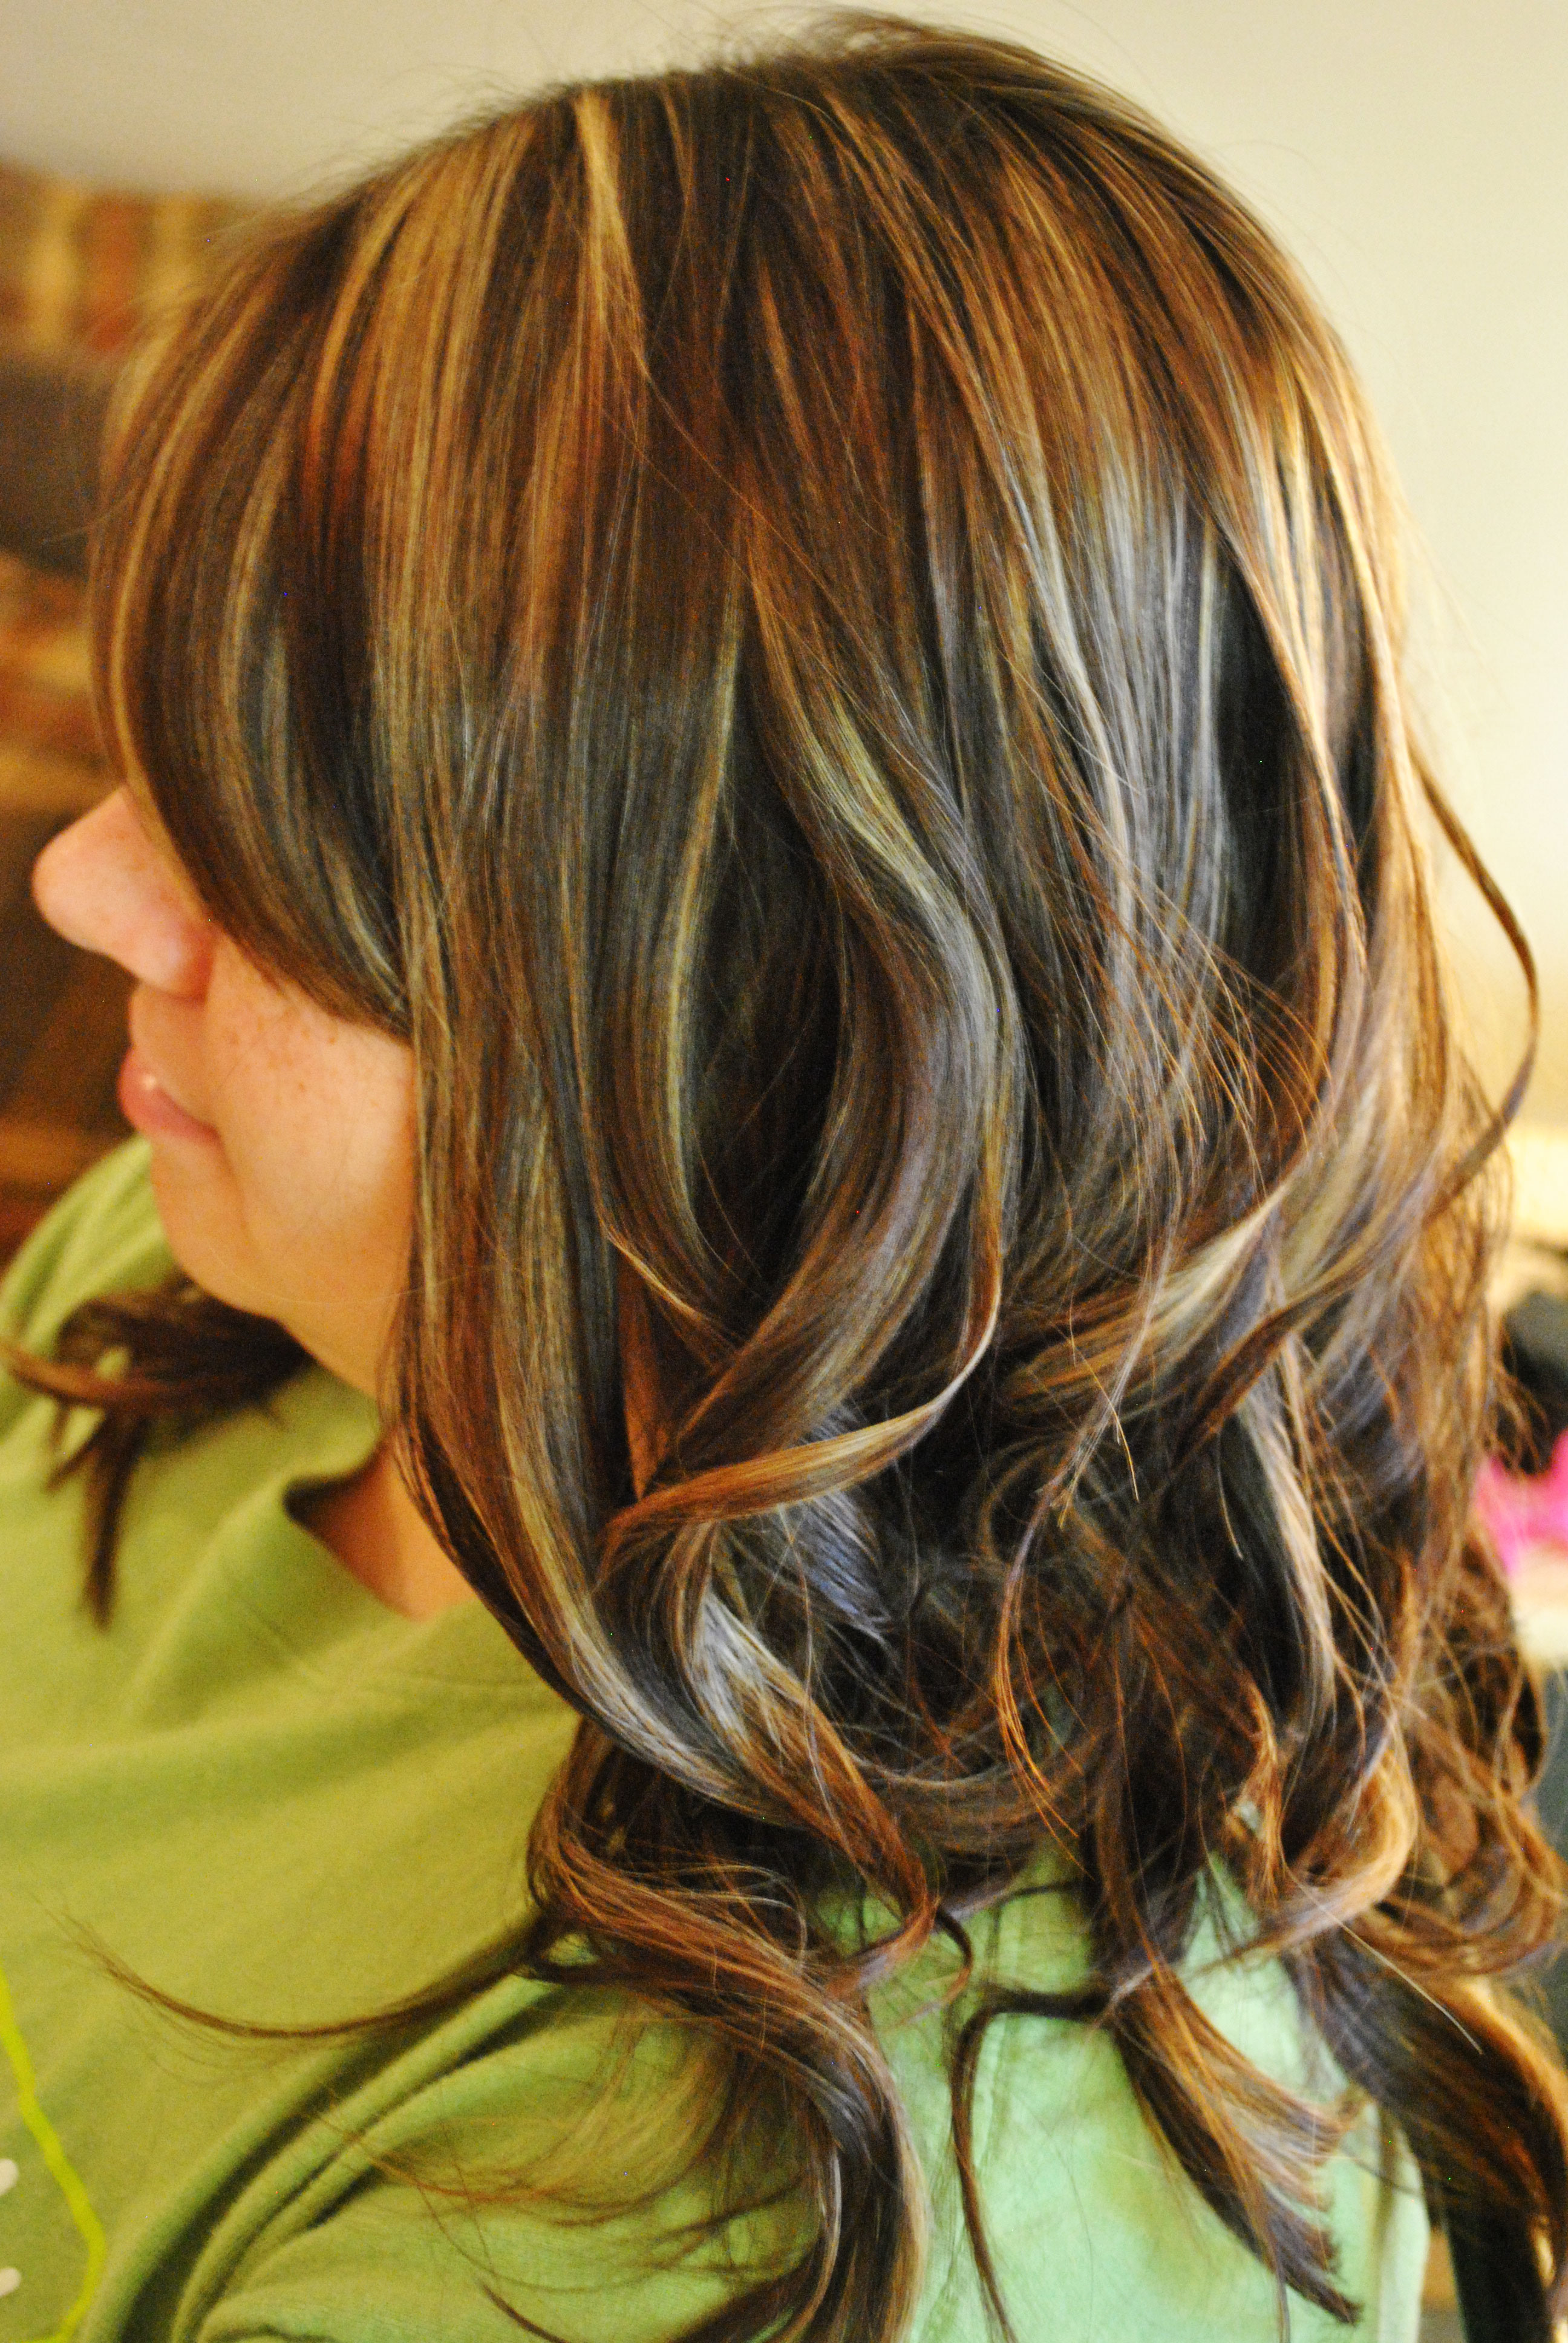 How to Achieve Great Curls on Long Hair